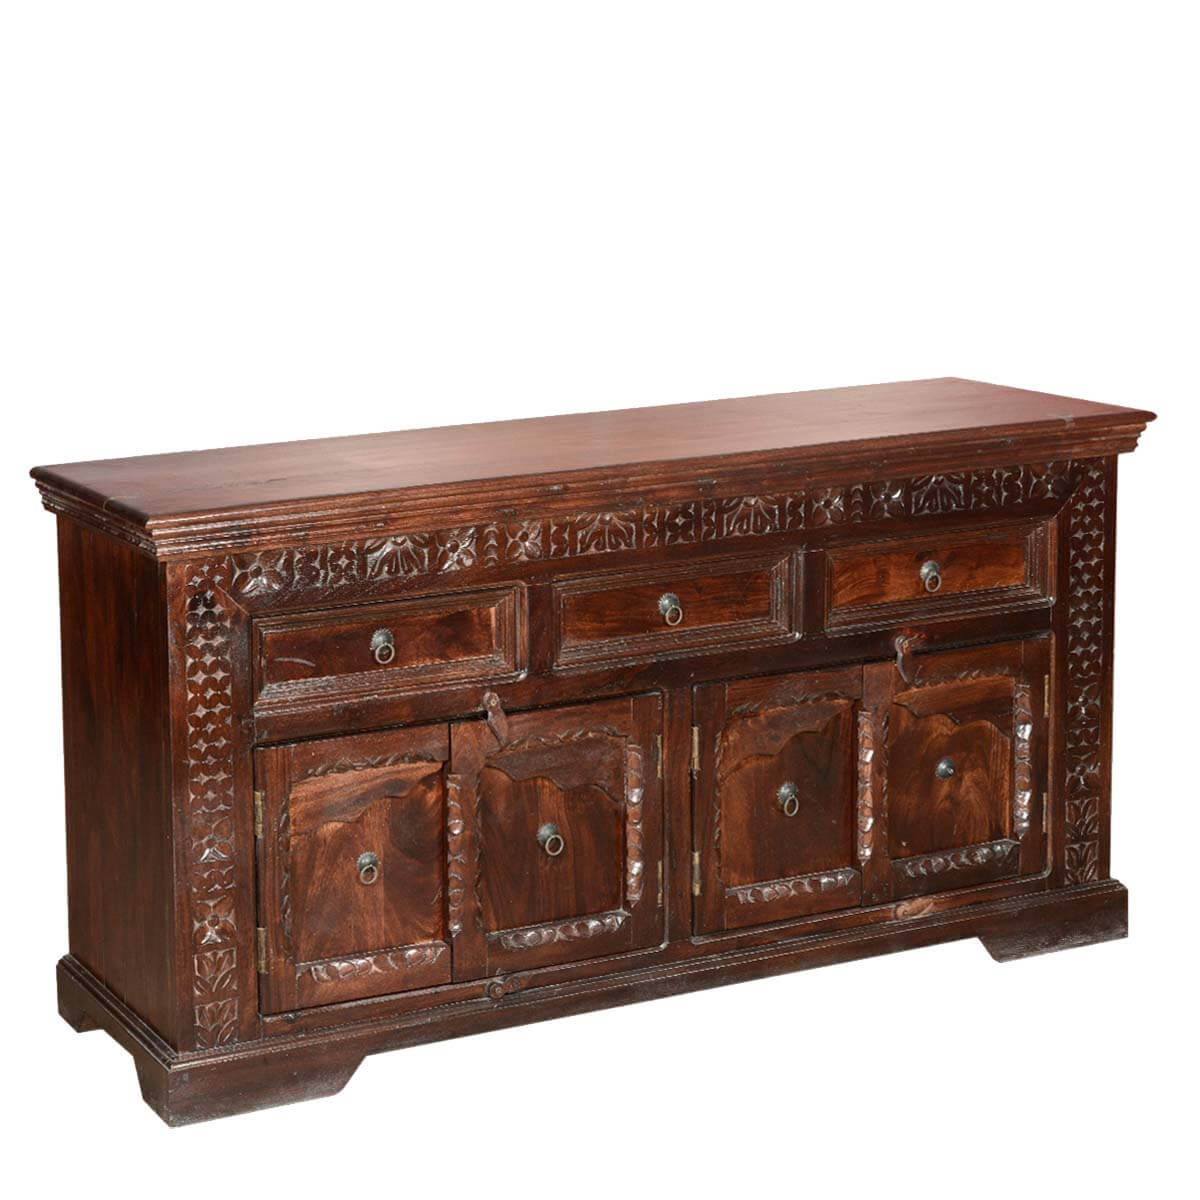 Empire Rustic Solid Wood 4 Door 3 Drawer Sideboard